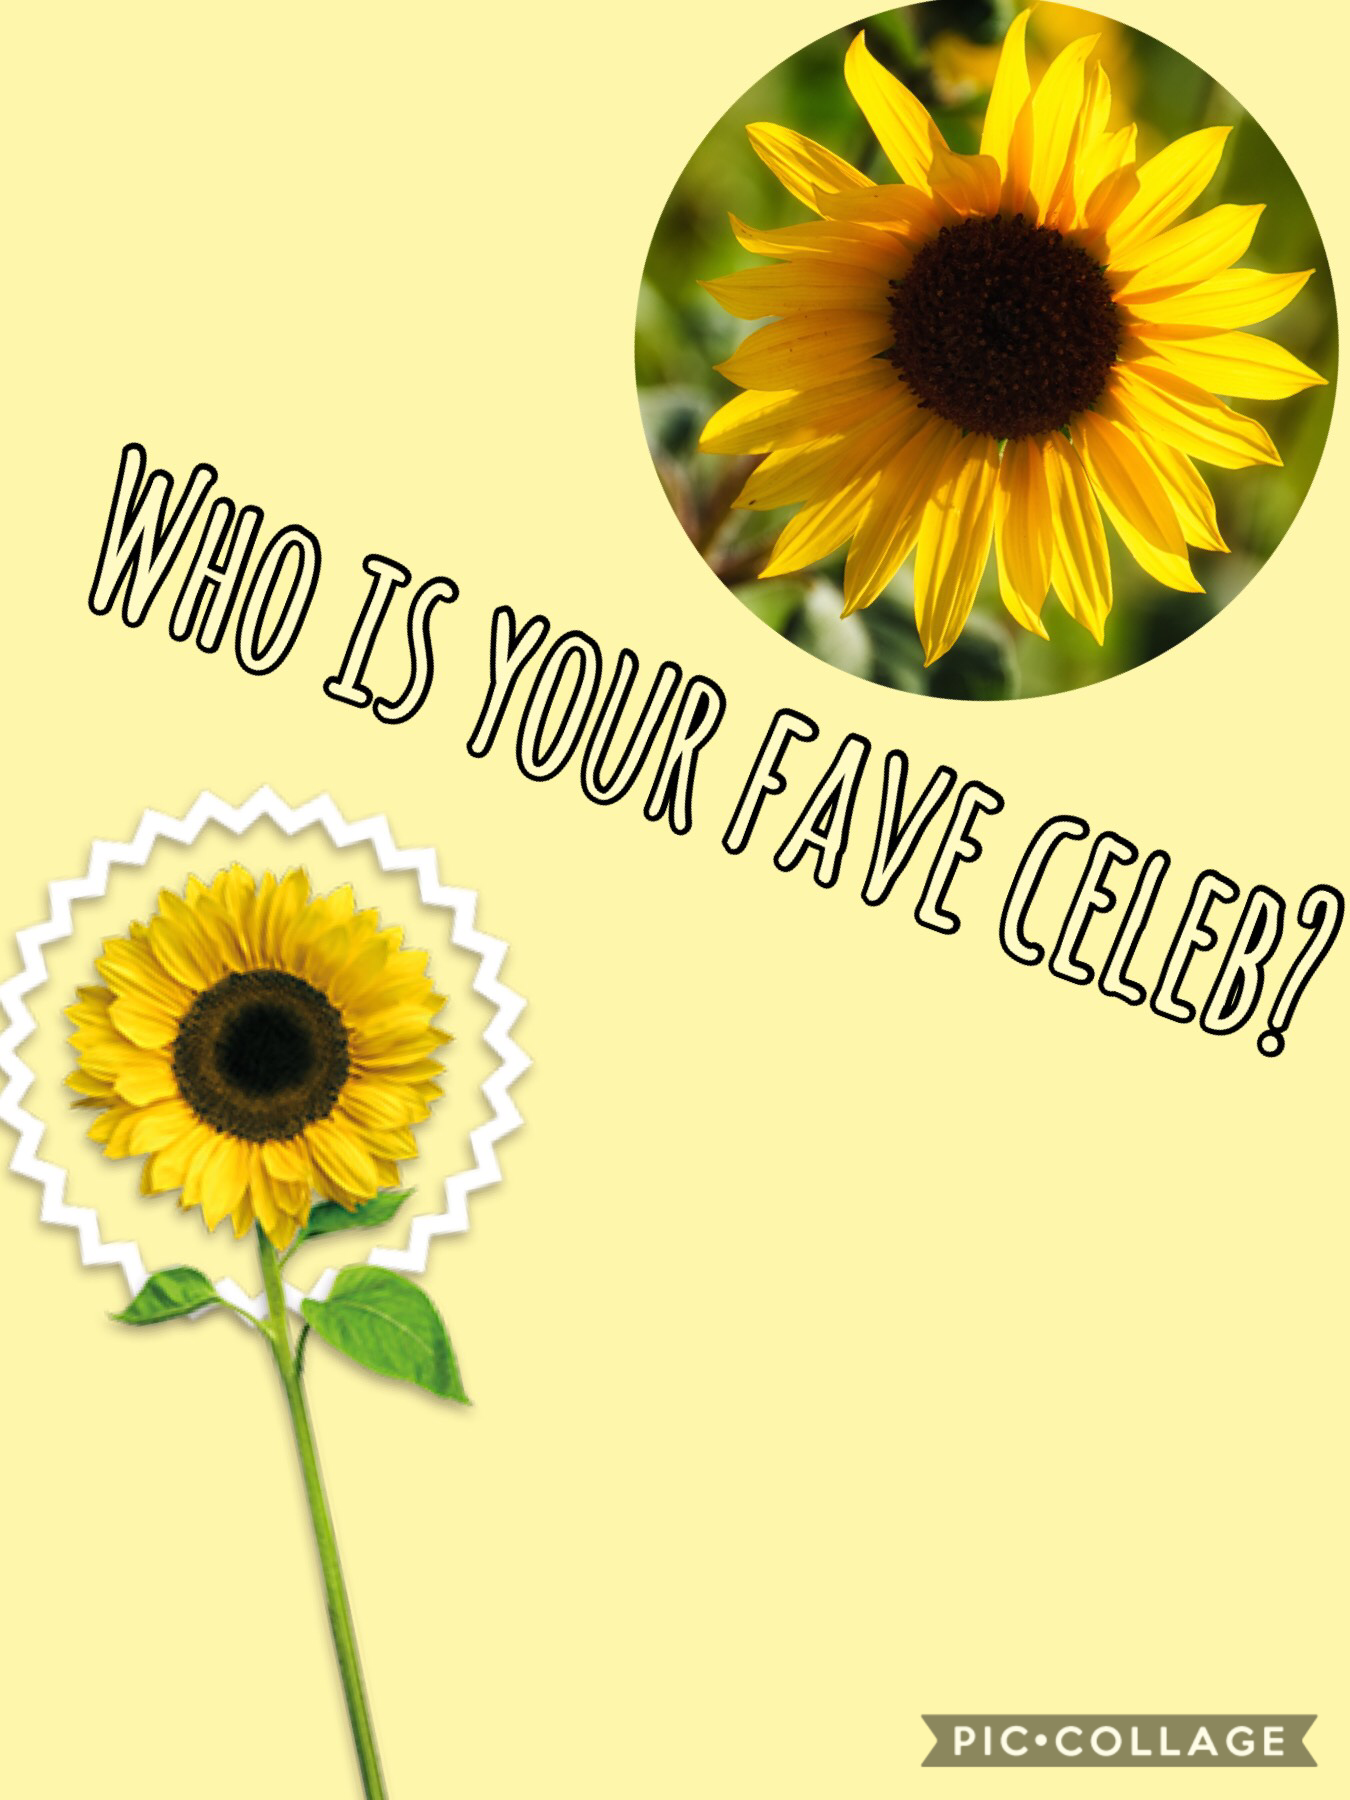 Who's your fave celeb?